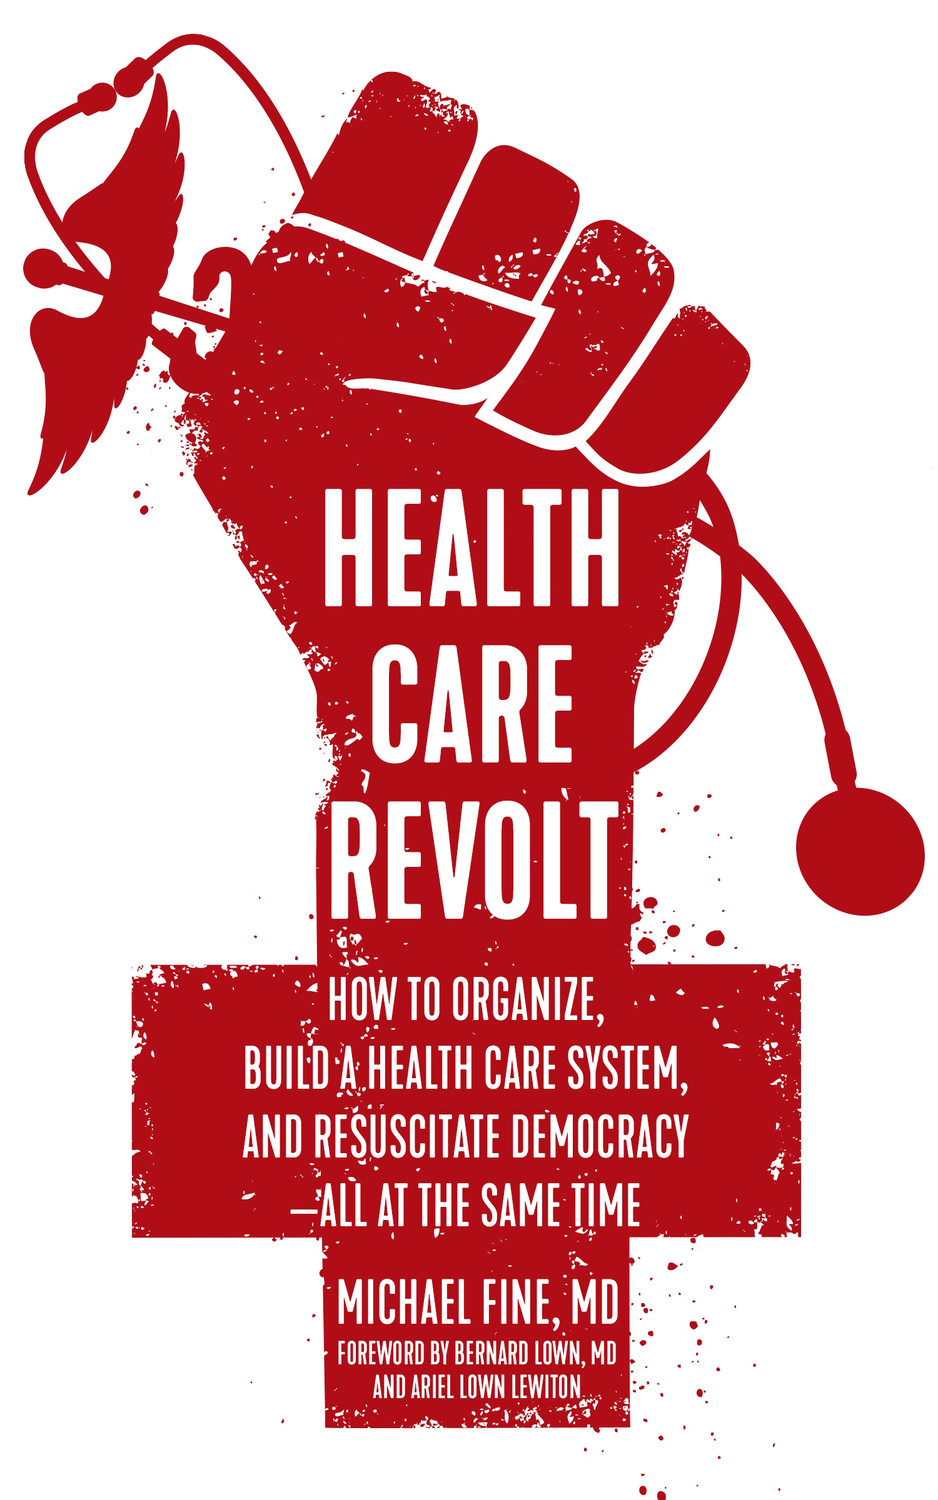 The cover of the new book by Dr. Michael Fine, Health Care Revolt, which will be published on Sept. 1 by PM Press.